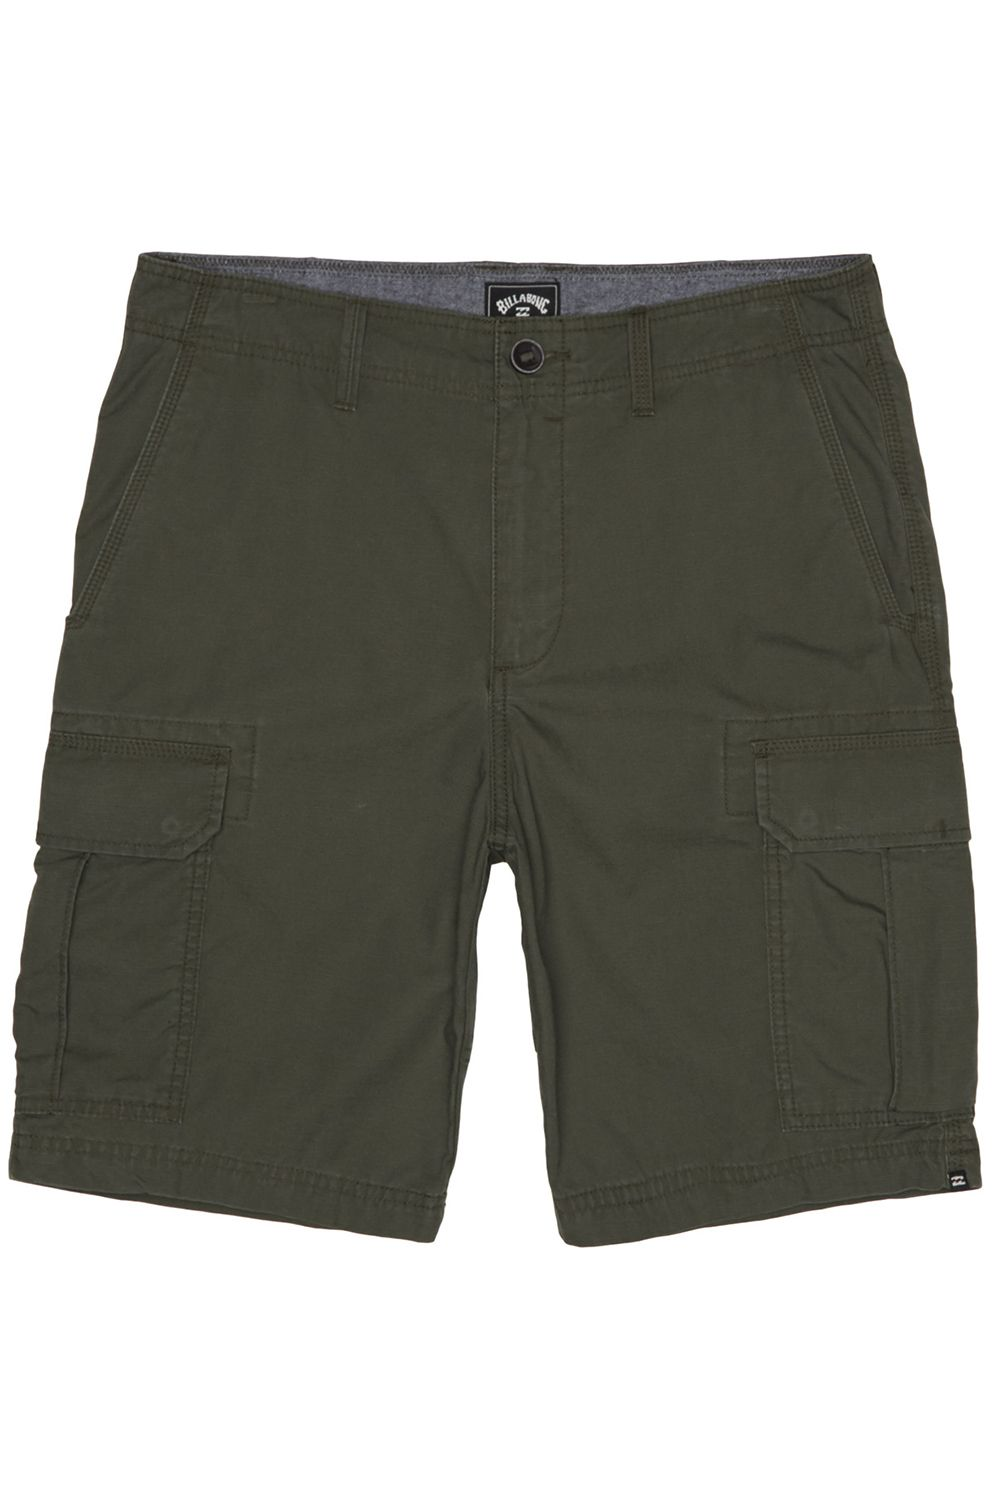 Walkshorts Billabong SCHEME CARGO Military